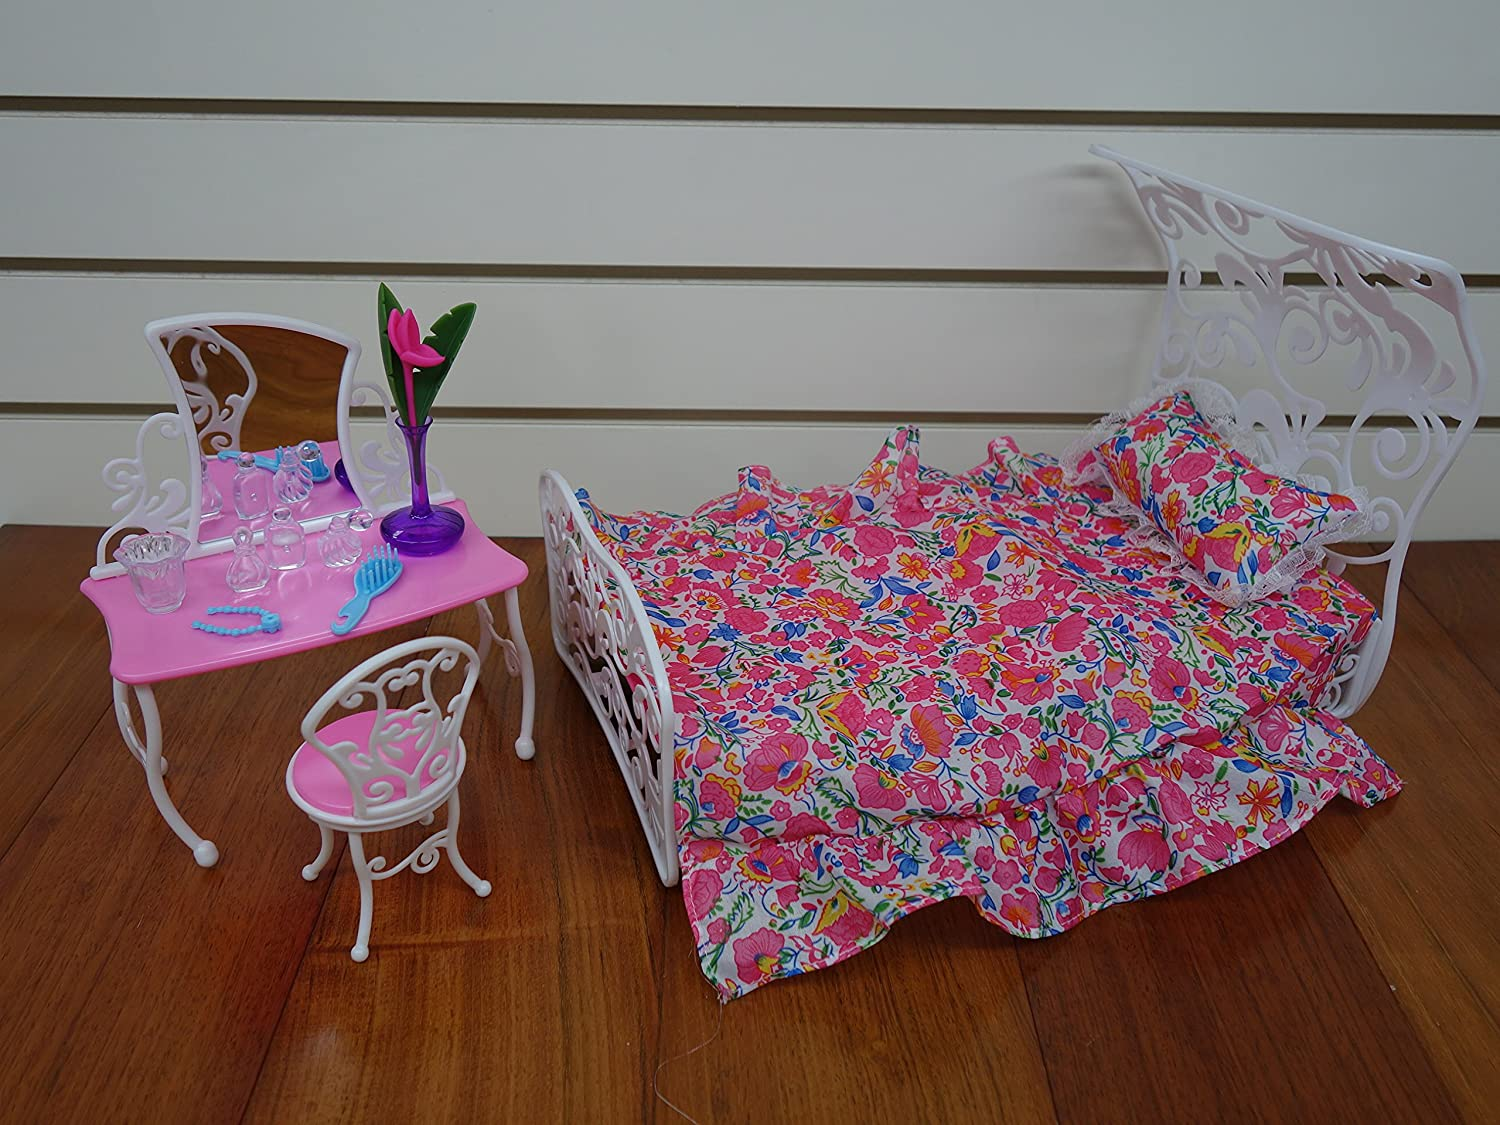 Gloria My Fancy Life Sweet Dream Bedroom Set For 11 5 Fashion Doll And Dollhouse Furniture Wong On Dolls Accessories Dollhouse Accessories